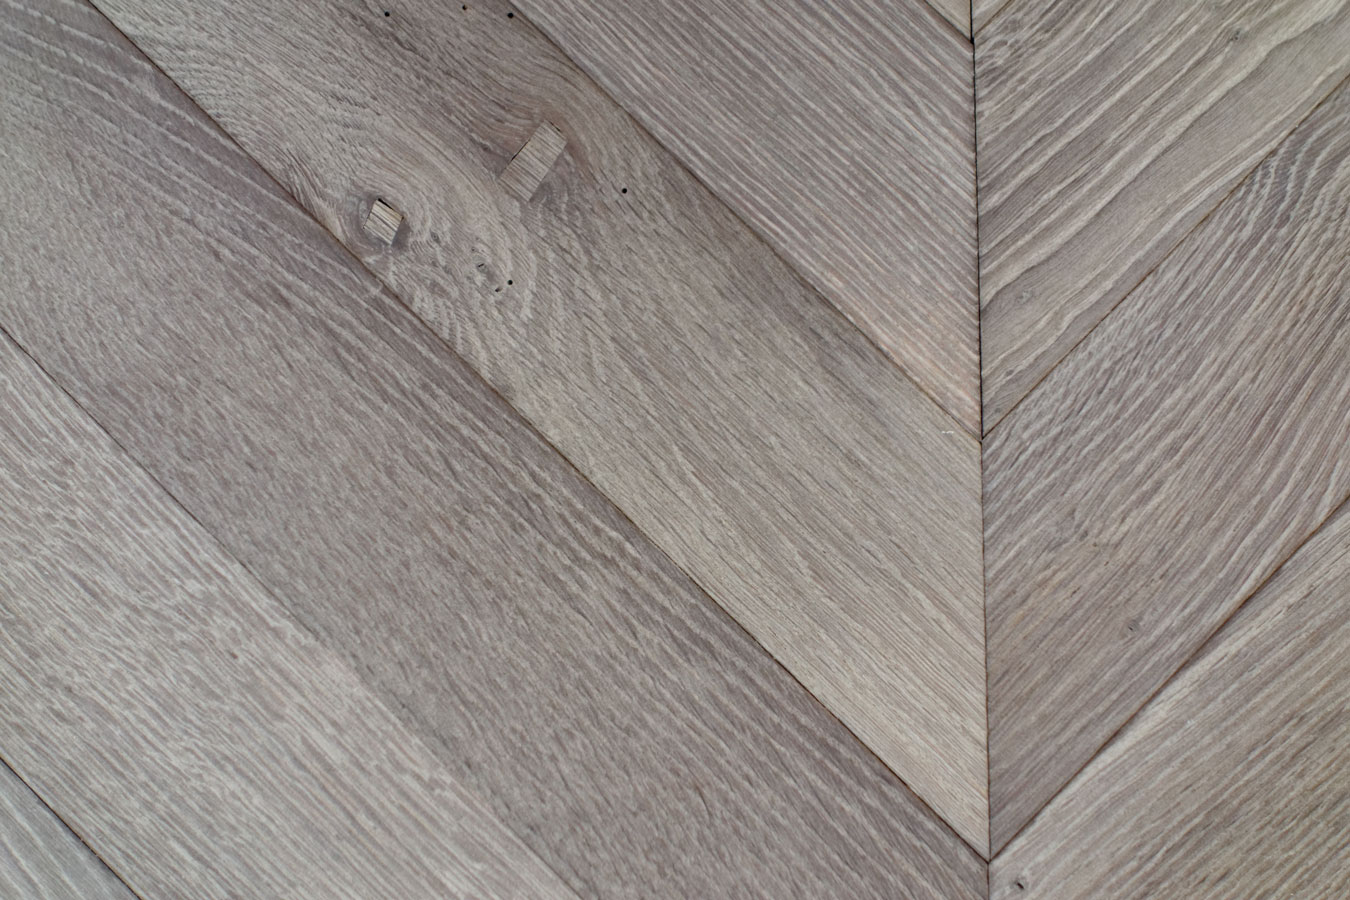 Wood flooring pictures posters news and videos on your - Parquet de jatoba ...